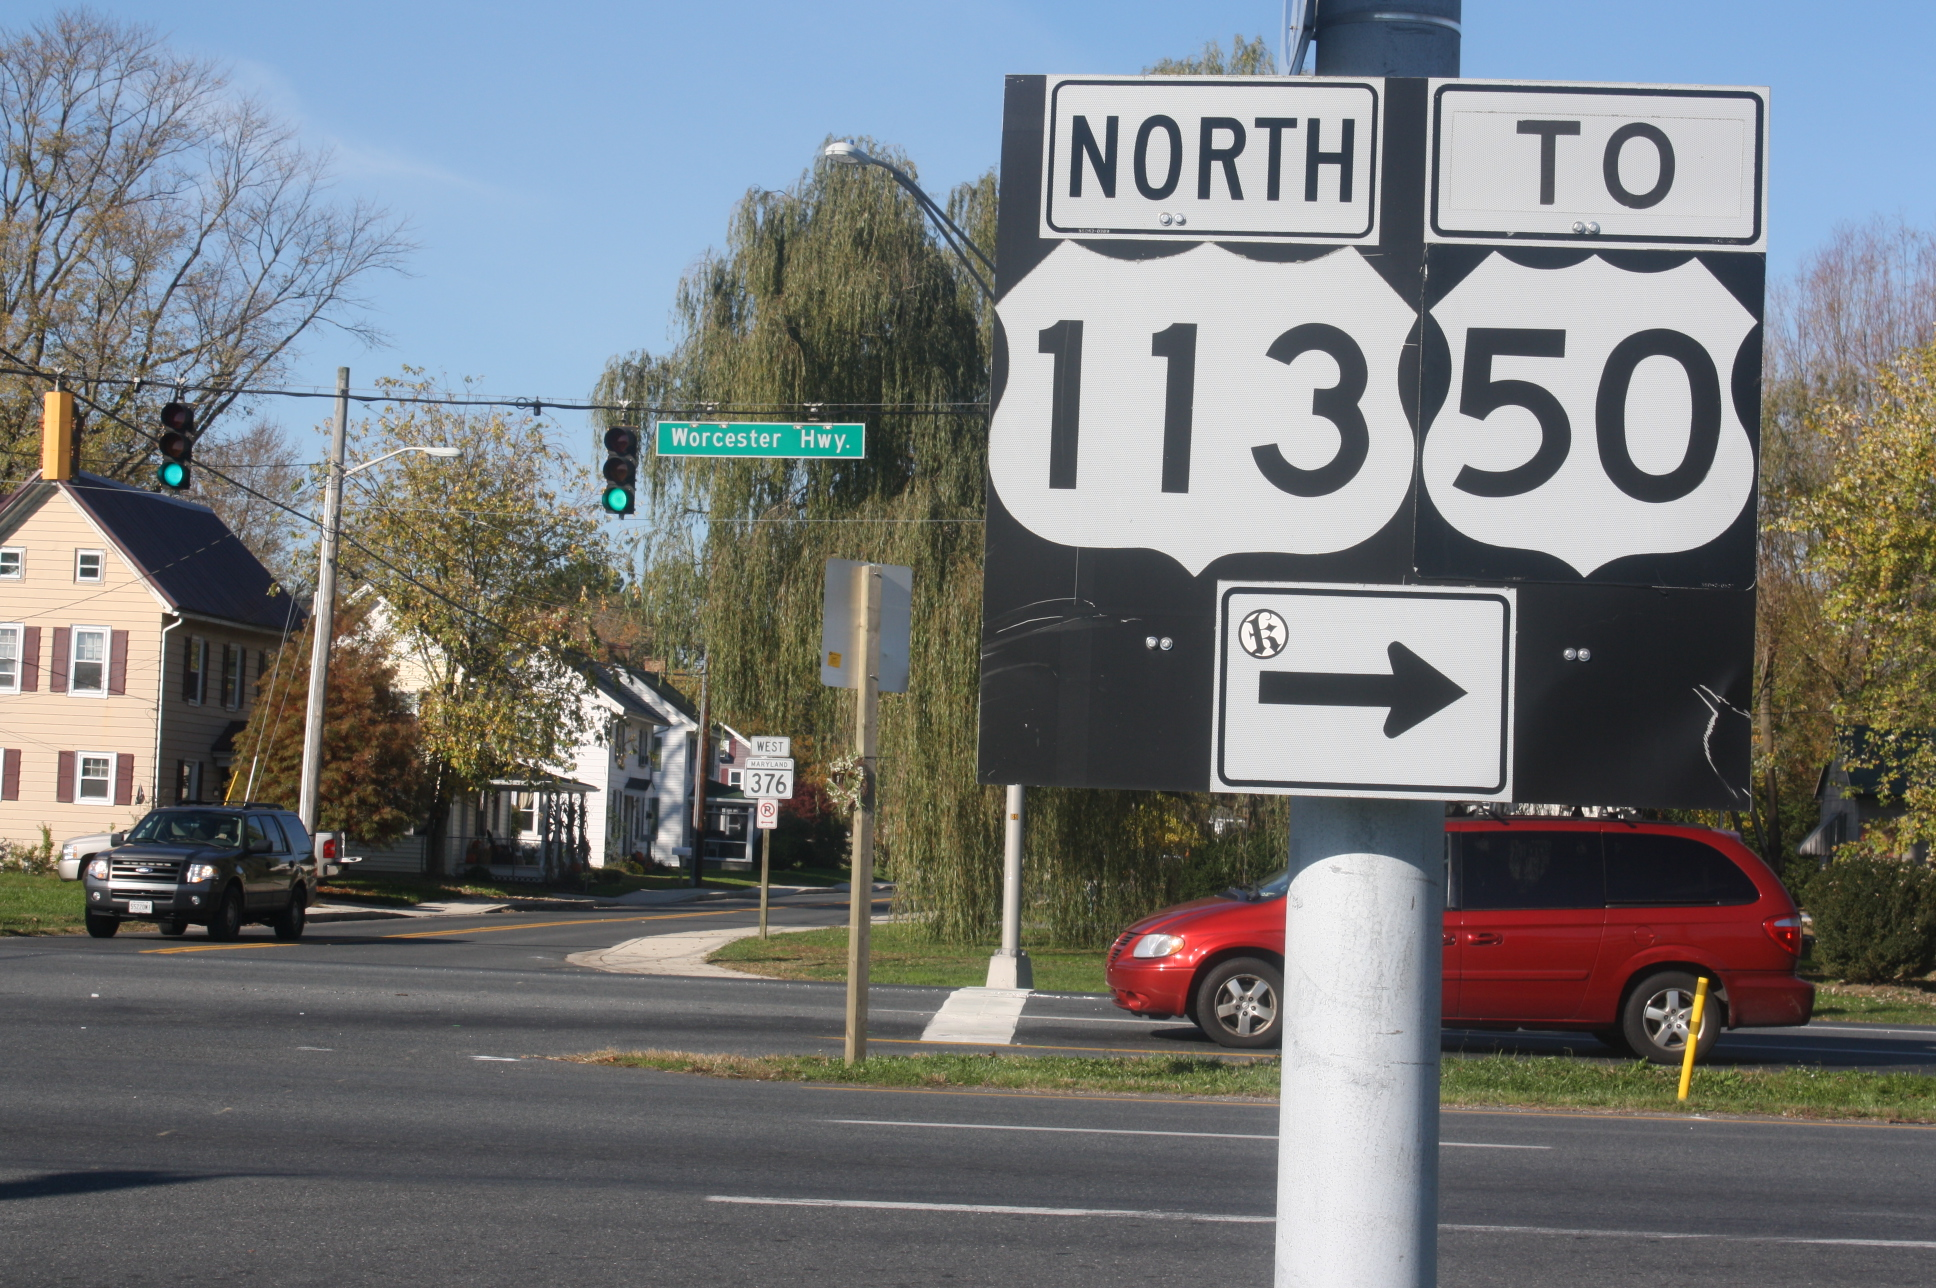 11/13/2013 | Fatality Triggers Call For Route 113 Intersection